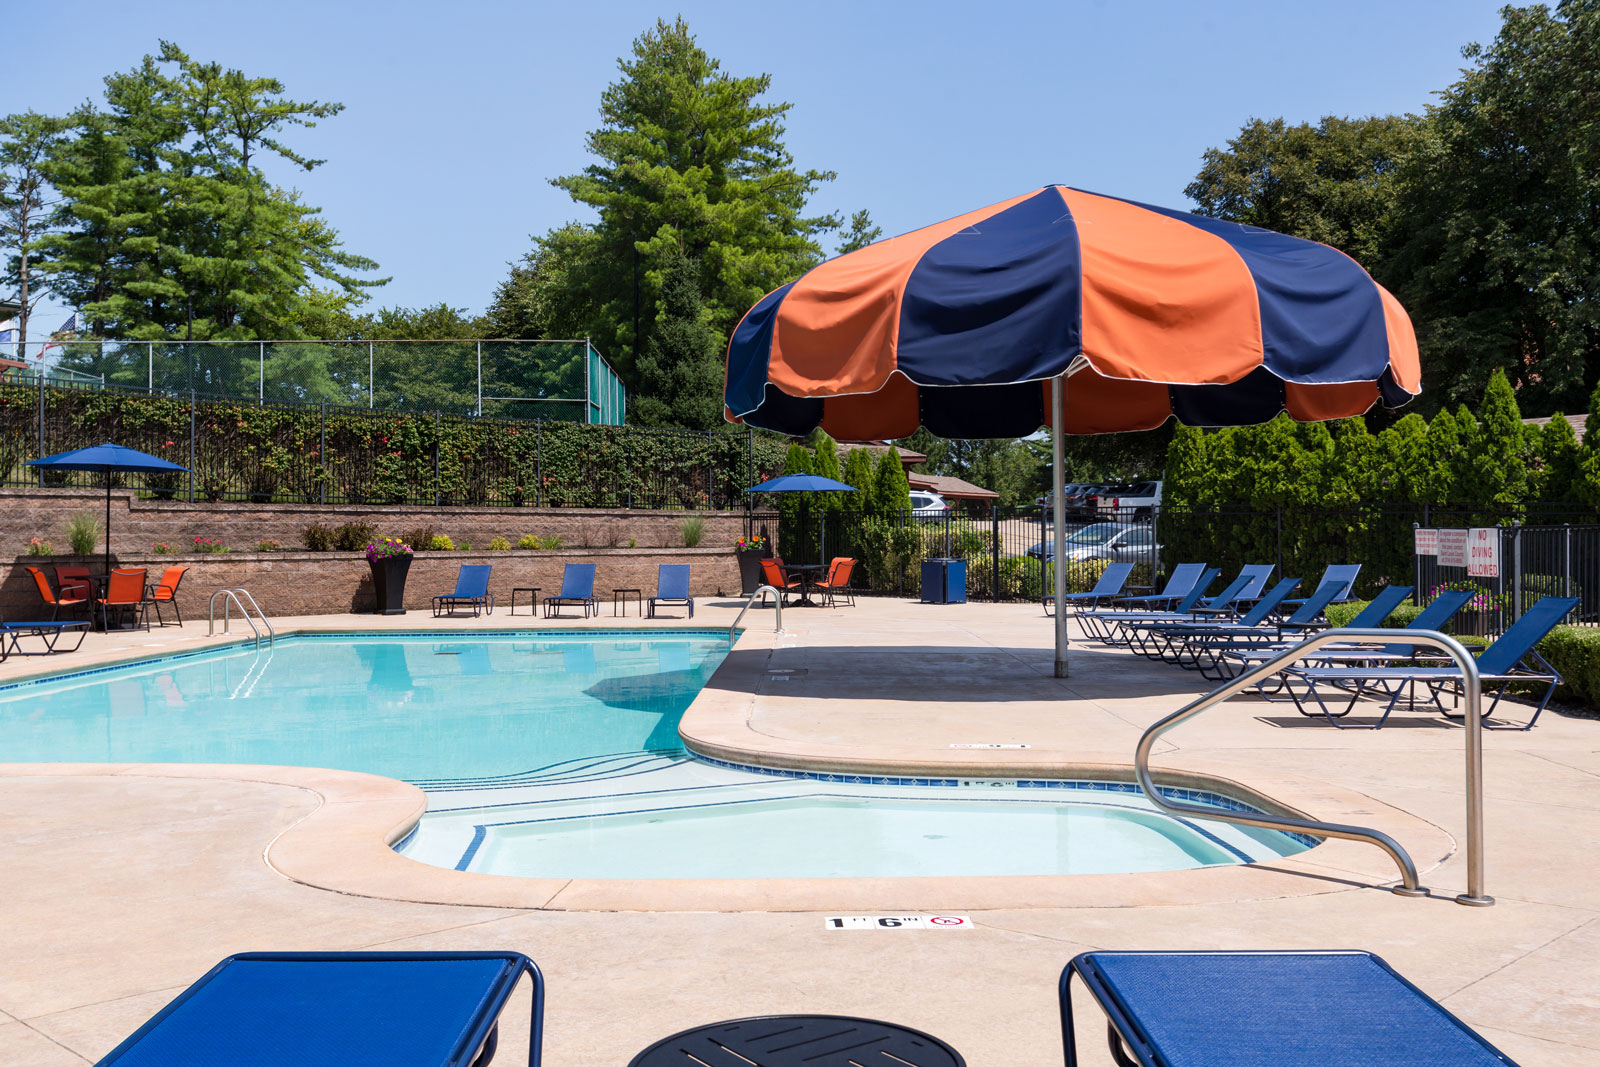 A view of the large umbrella near the pool at Chesterfield Village Apartments